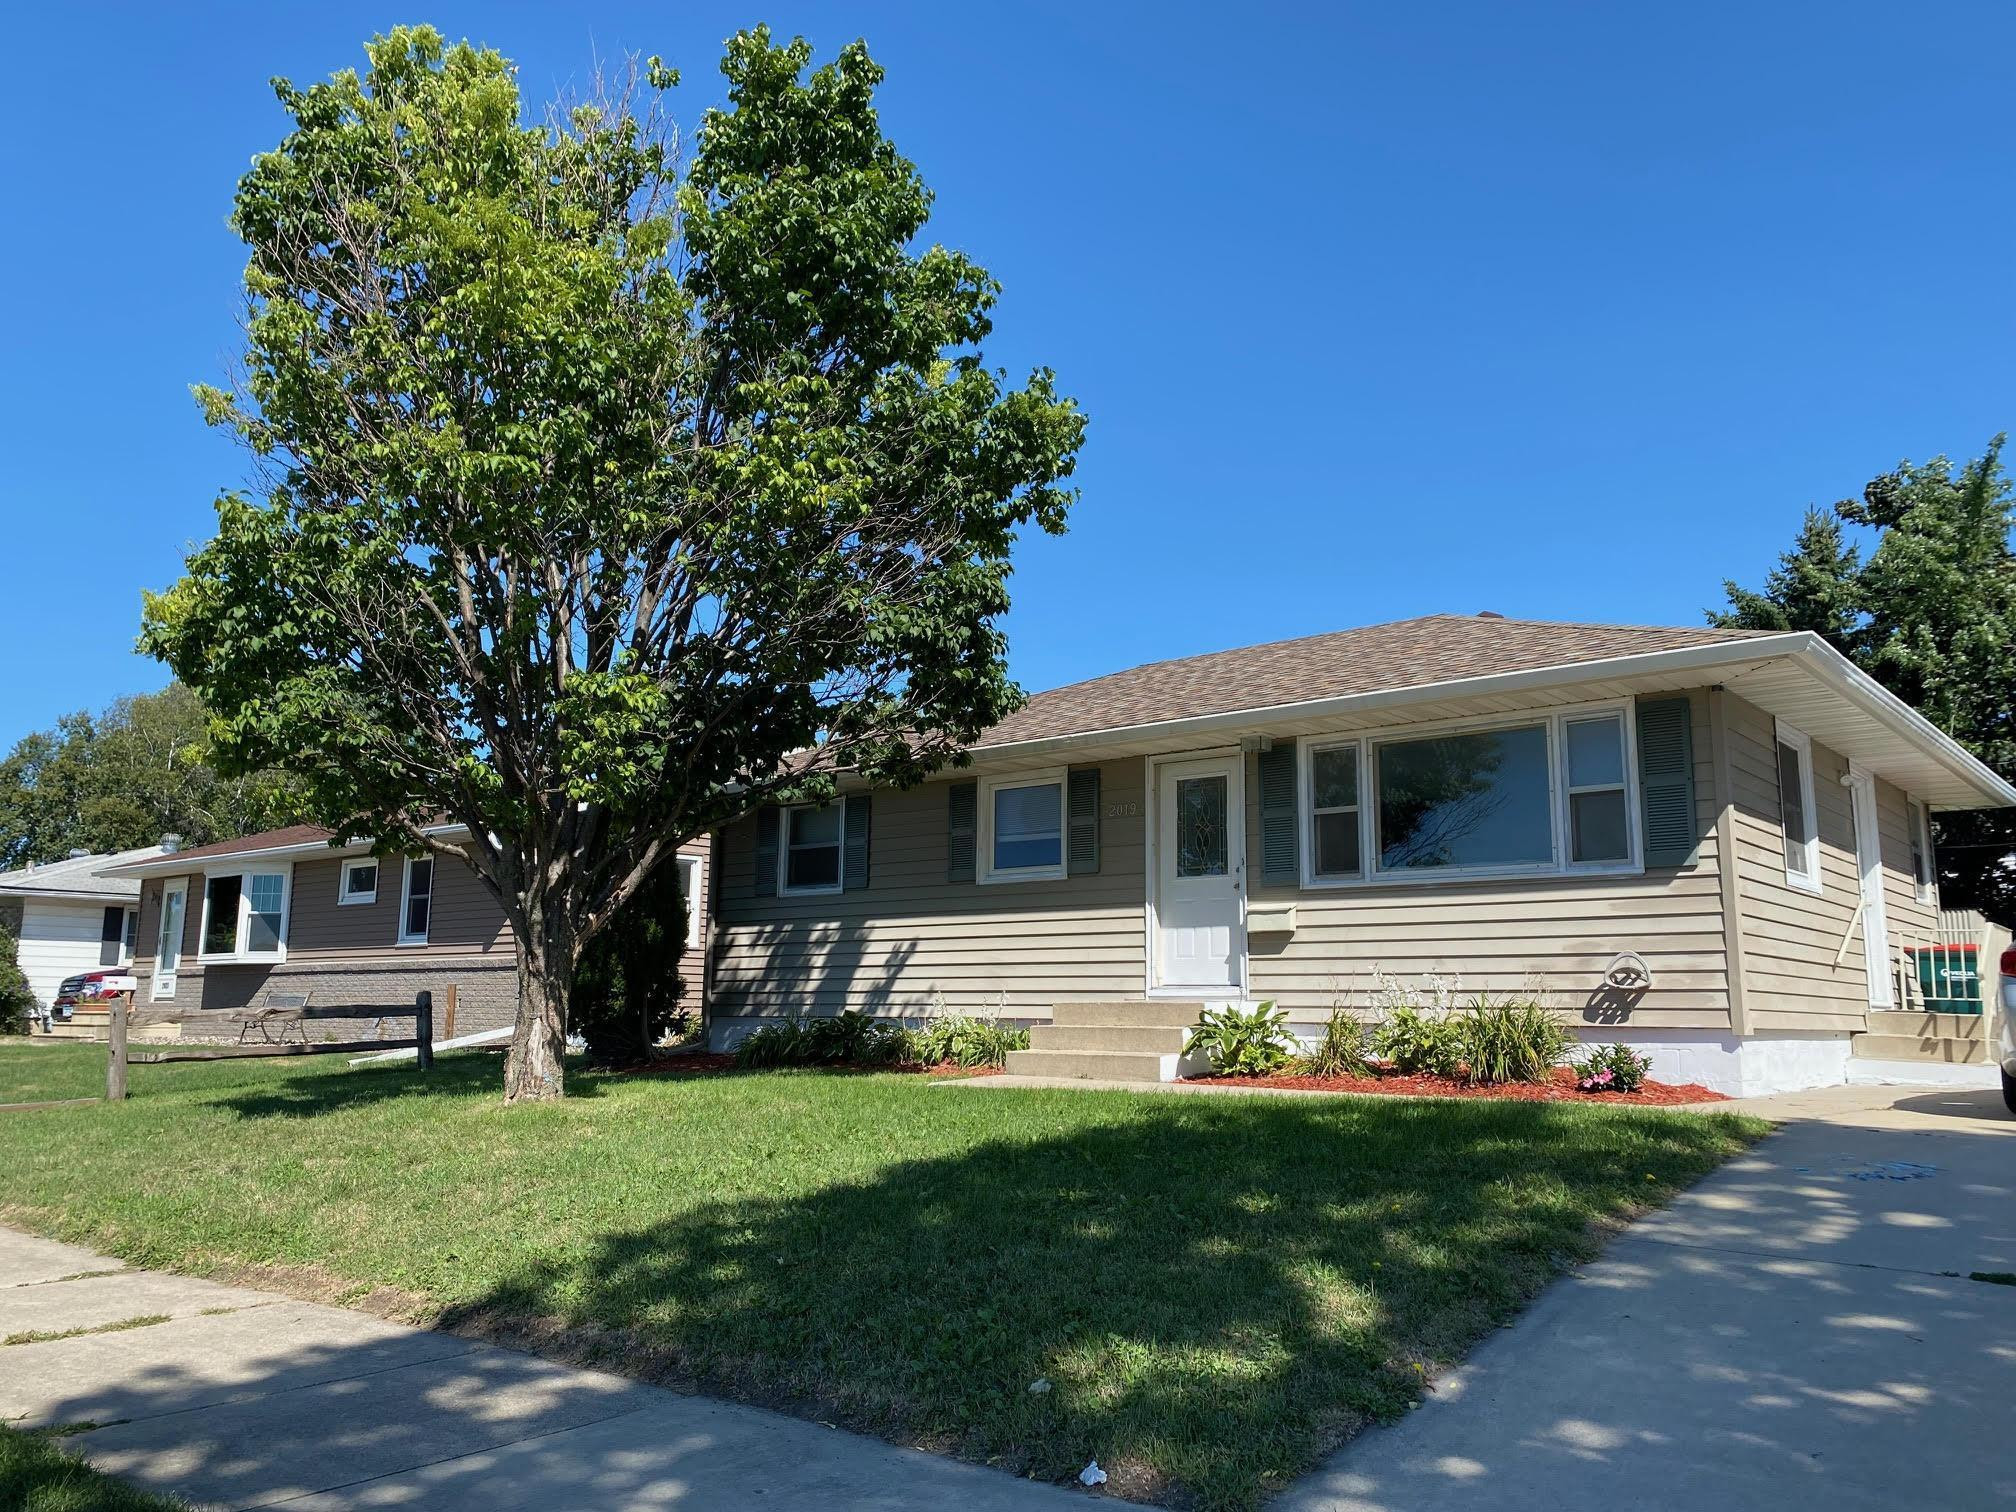 2019 15th Street NW, Rochester, MN 55901